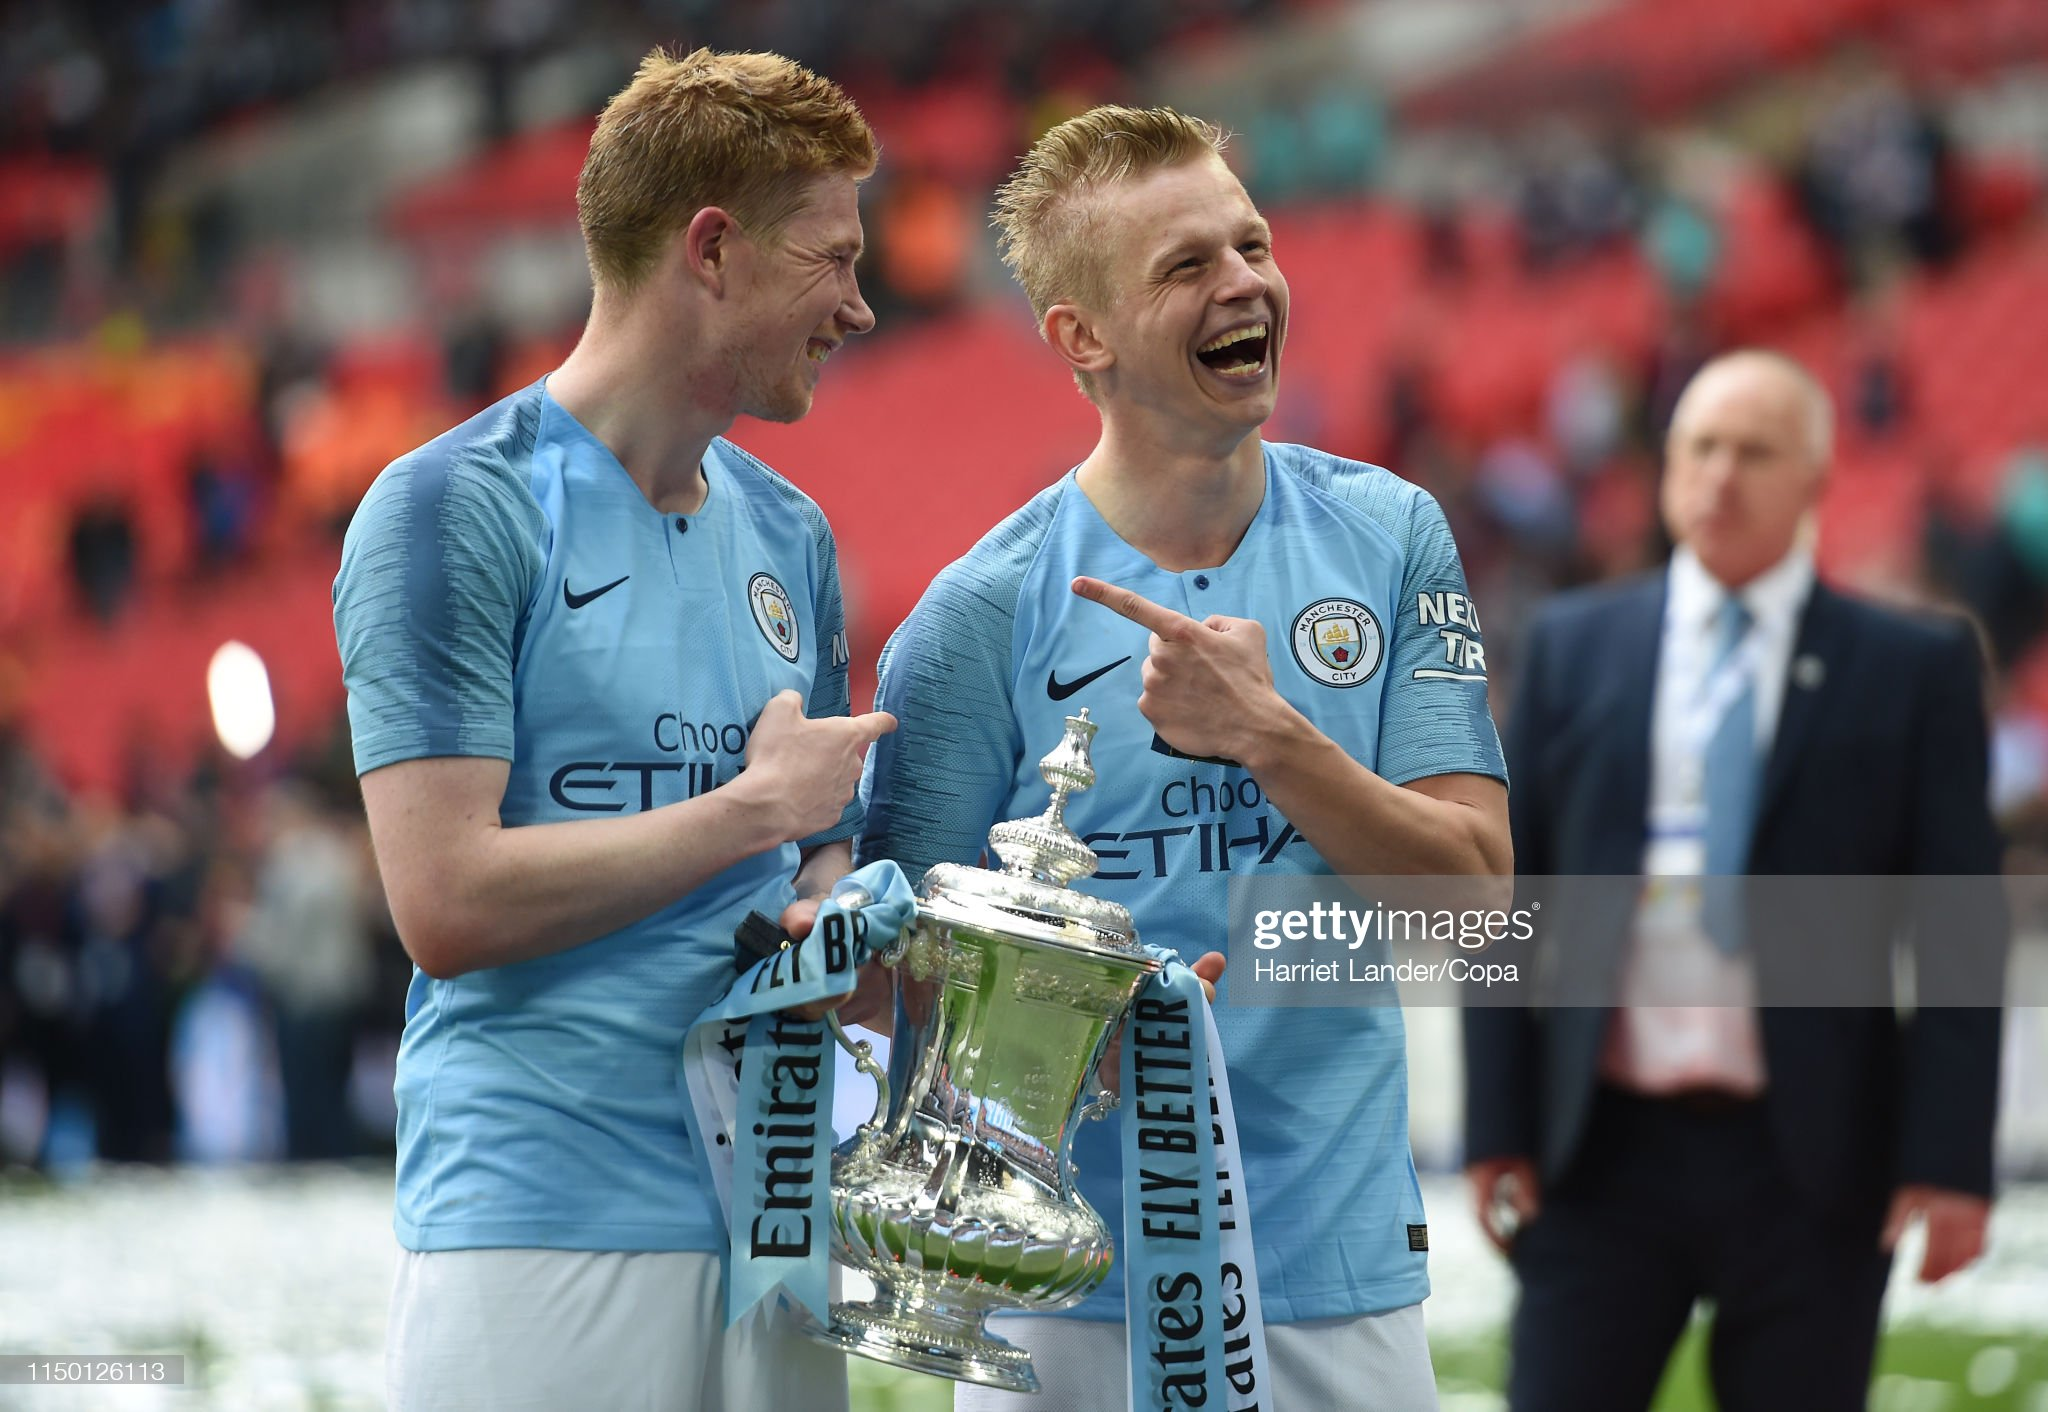 https://media.gettyimages.com/photos/kevin-de-bruyne-and-oleksandr-zinchenko-of-manchester-city-celebrate-picture-id1150126113?s=2048x2048